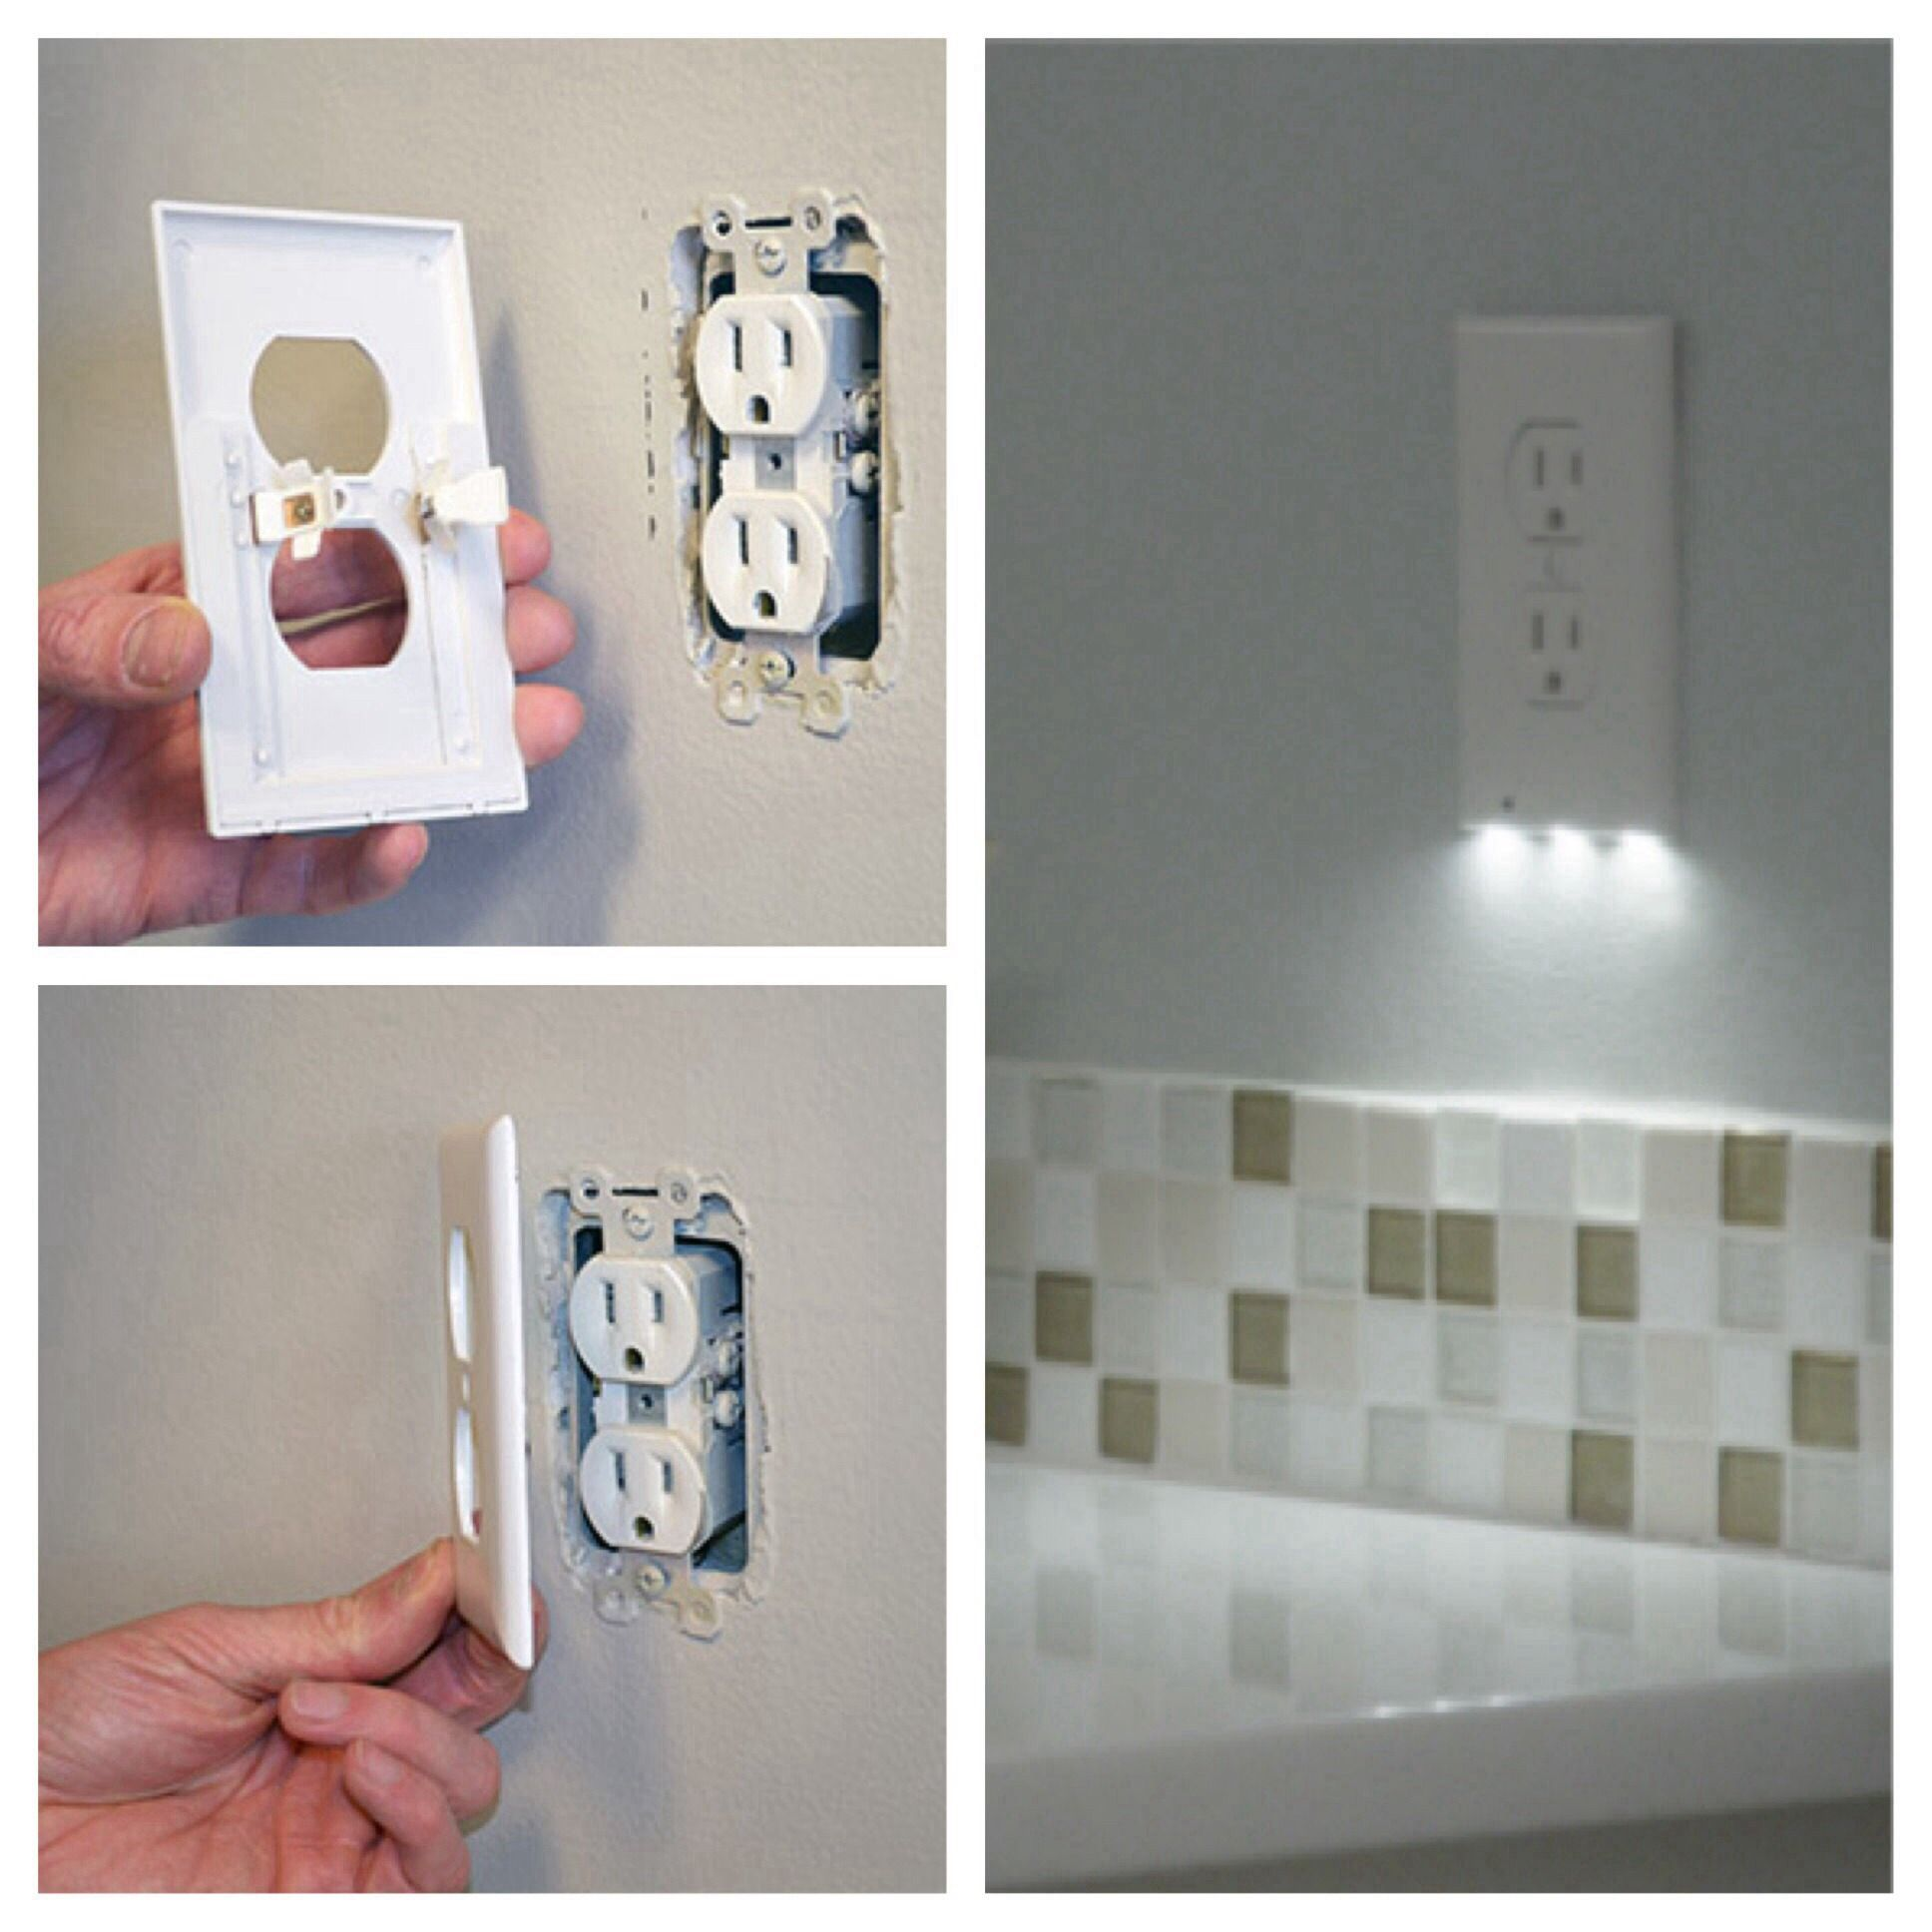 This Outlet Cover Is Also A Nightlight Genius Outlet Covers